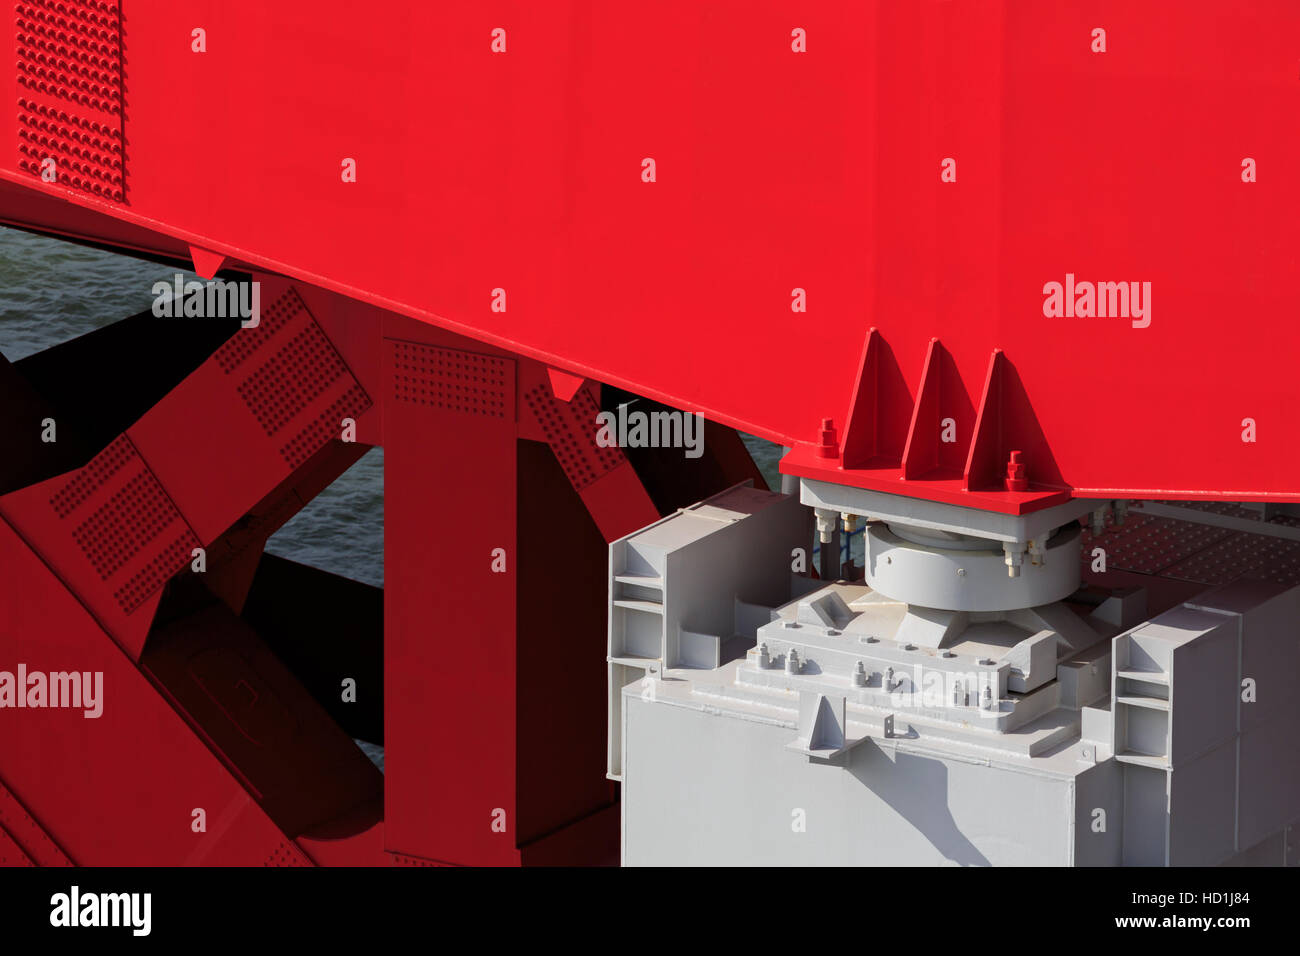 Ohashi Bridge Earthquake Retrofit, Kobe City, Honshu Island, Japan, Asia - Stock Image